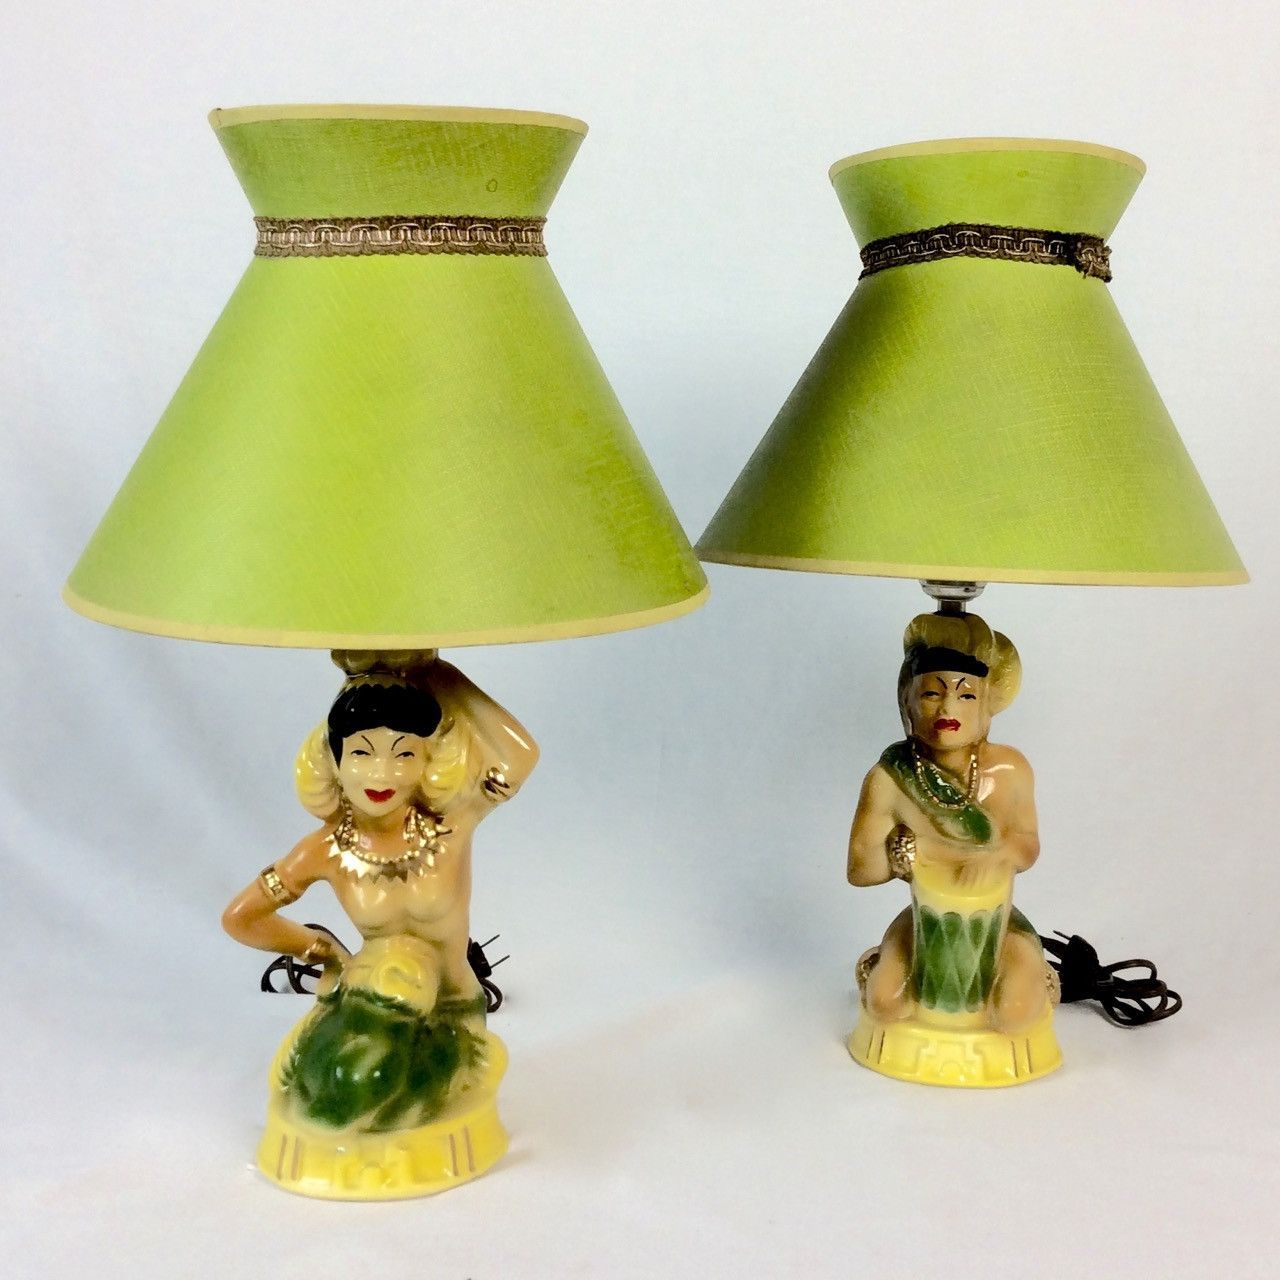 Vintage 1950s hawaiian lamps and lampshades hawaiian 1950s and 1940s 1950s hawaiian lamps and shades aloadofball Images